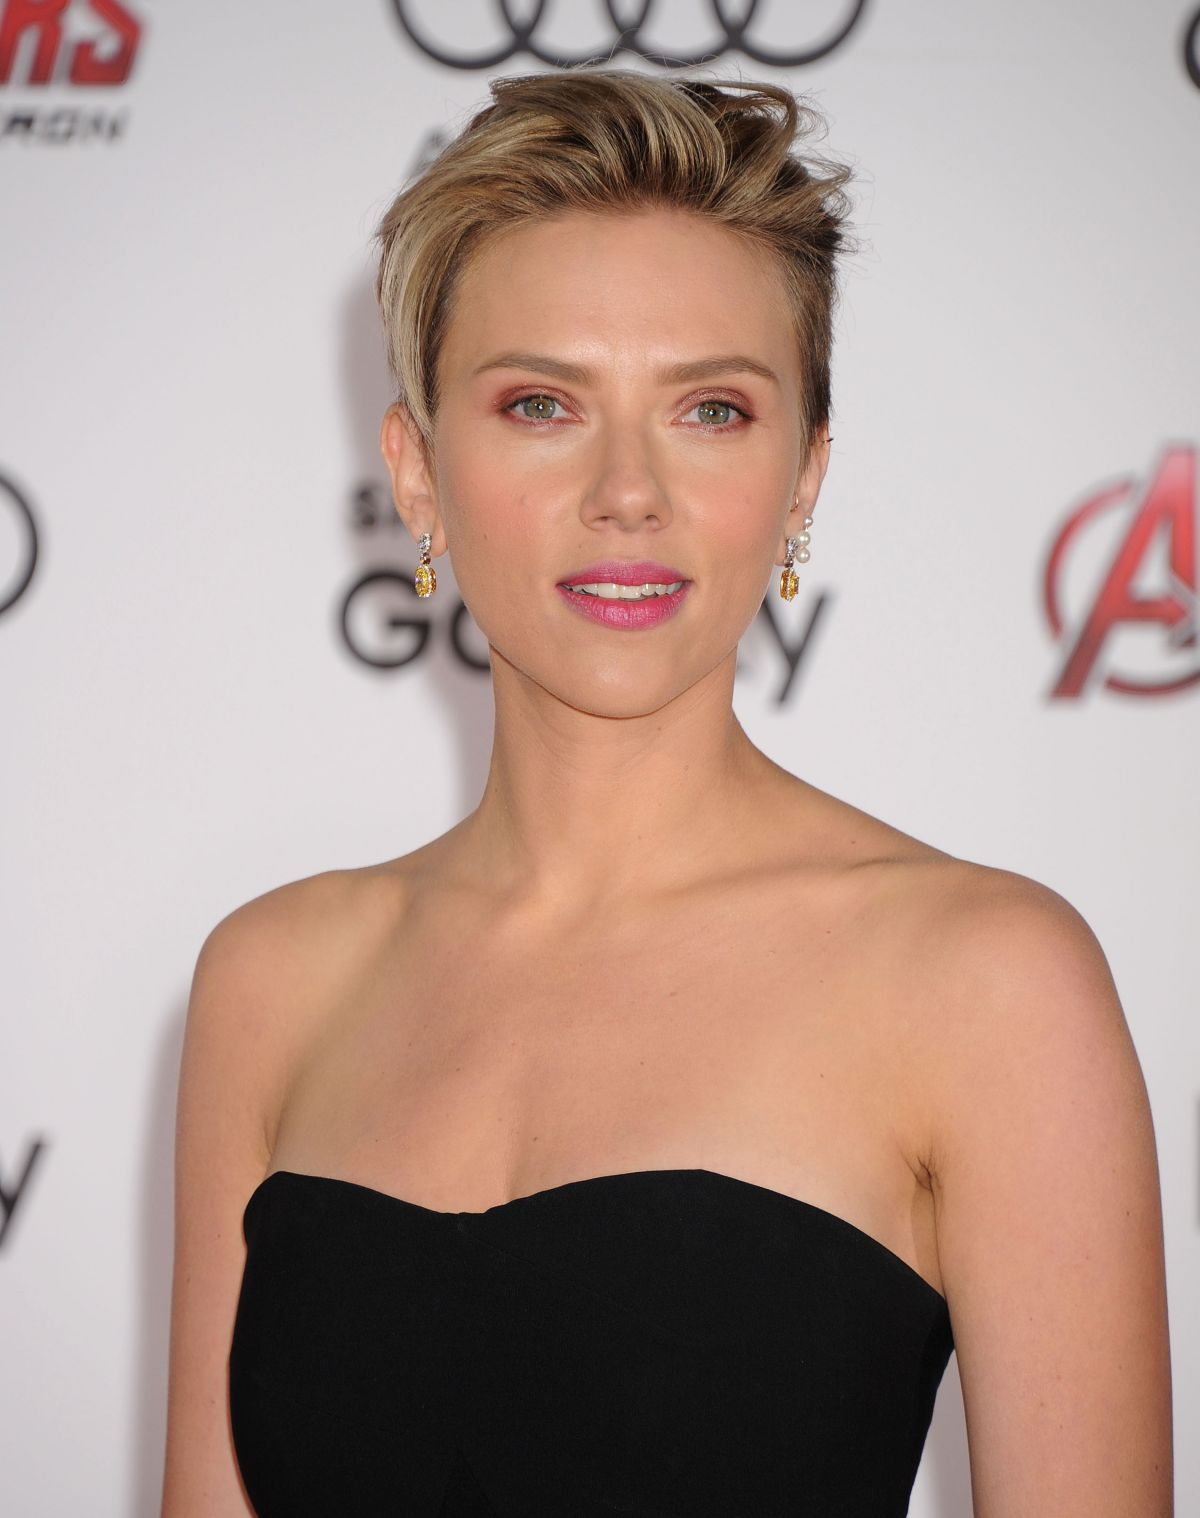 SCARLETT JOHANSSON at Avengers: Age of Ultron Premiere in Hollywood Scarlett Johansson